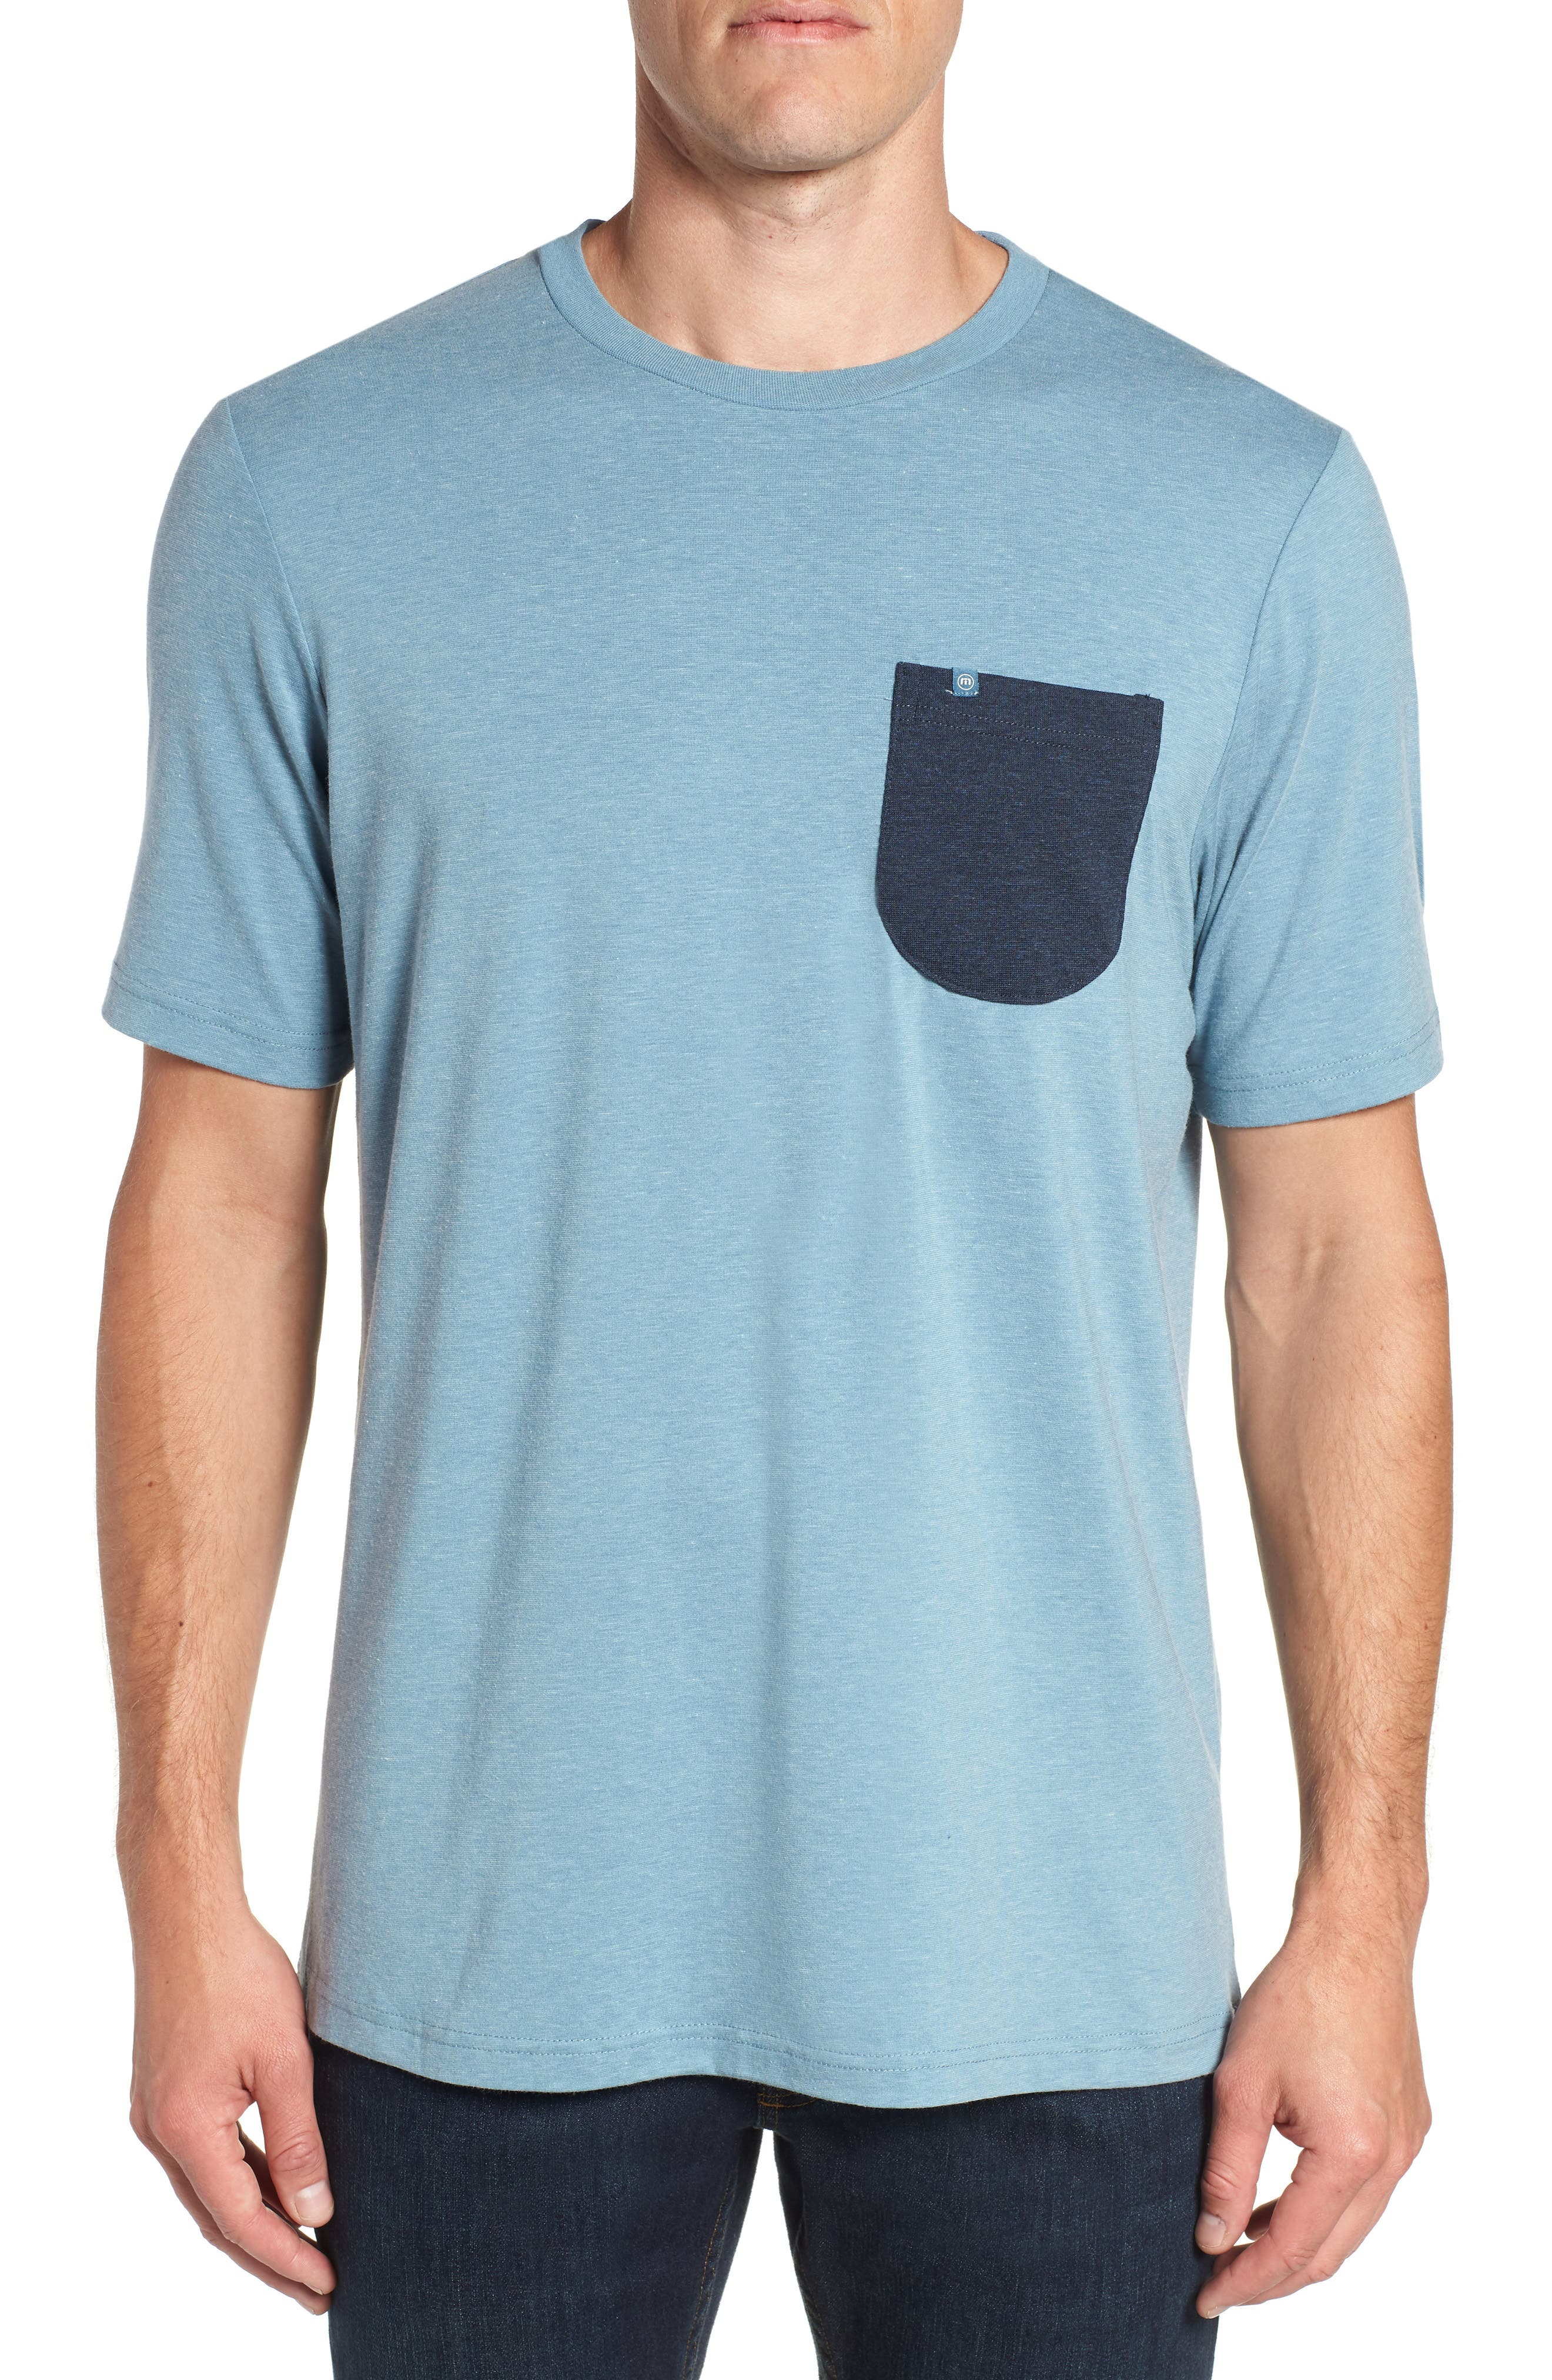 Simmer Down T-Shirt,                             Main thumbnail 1, color,                             HEATHER BLUE STONE